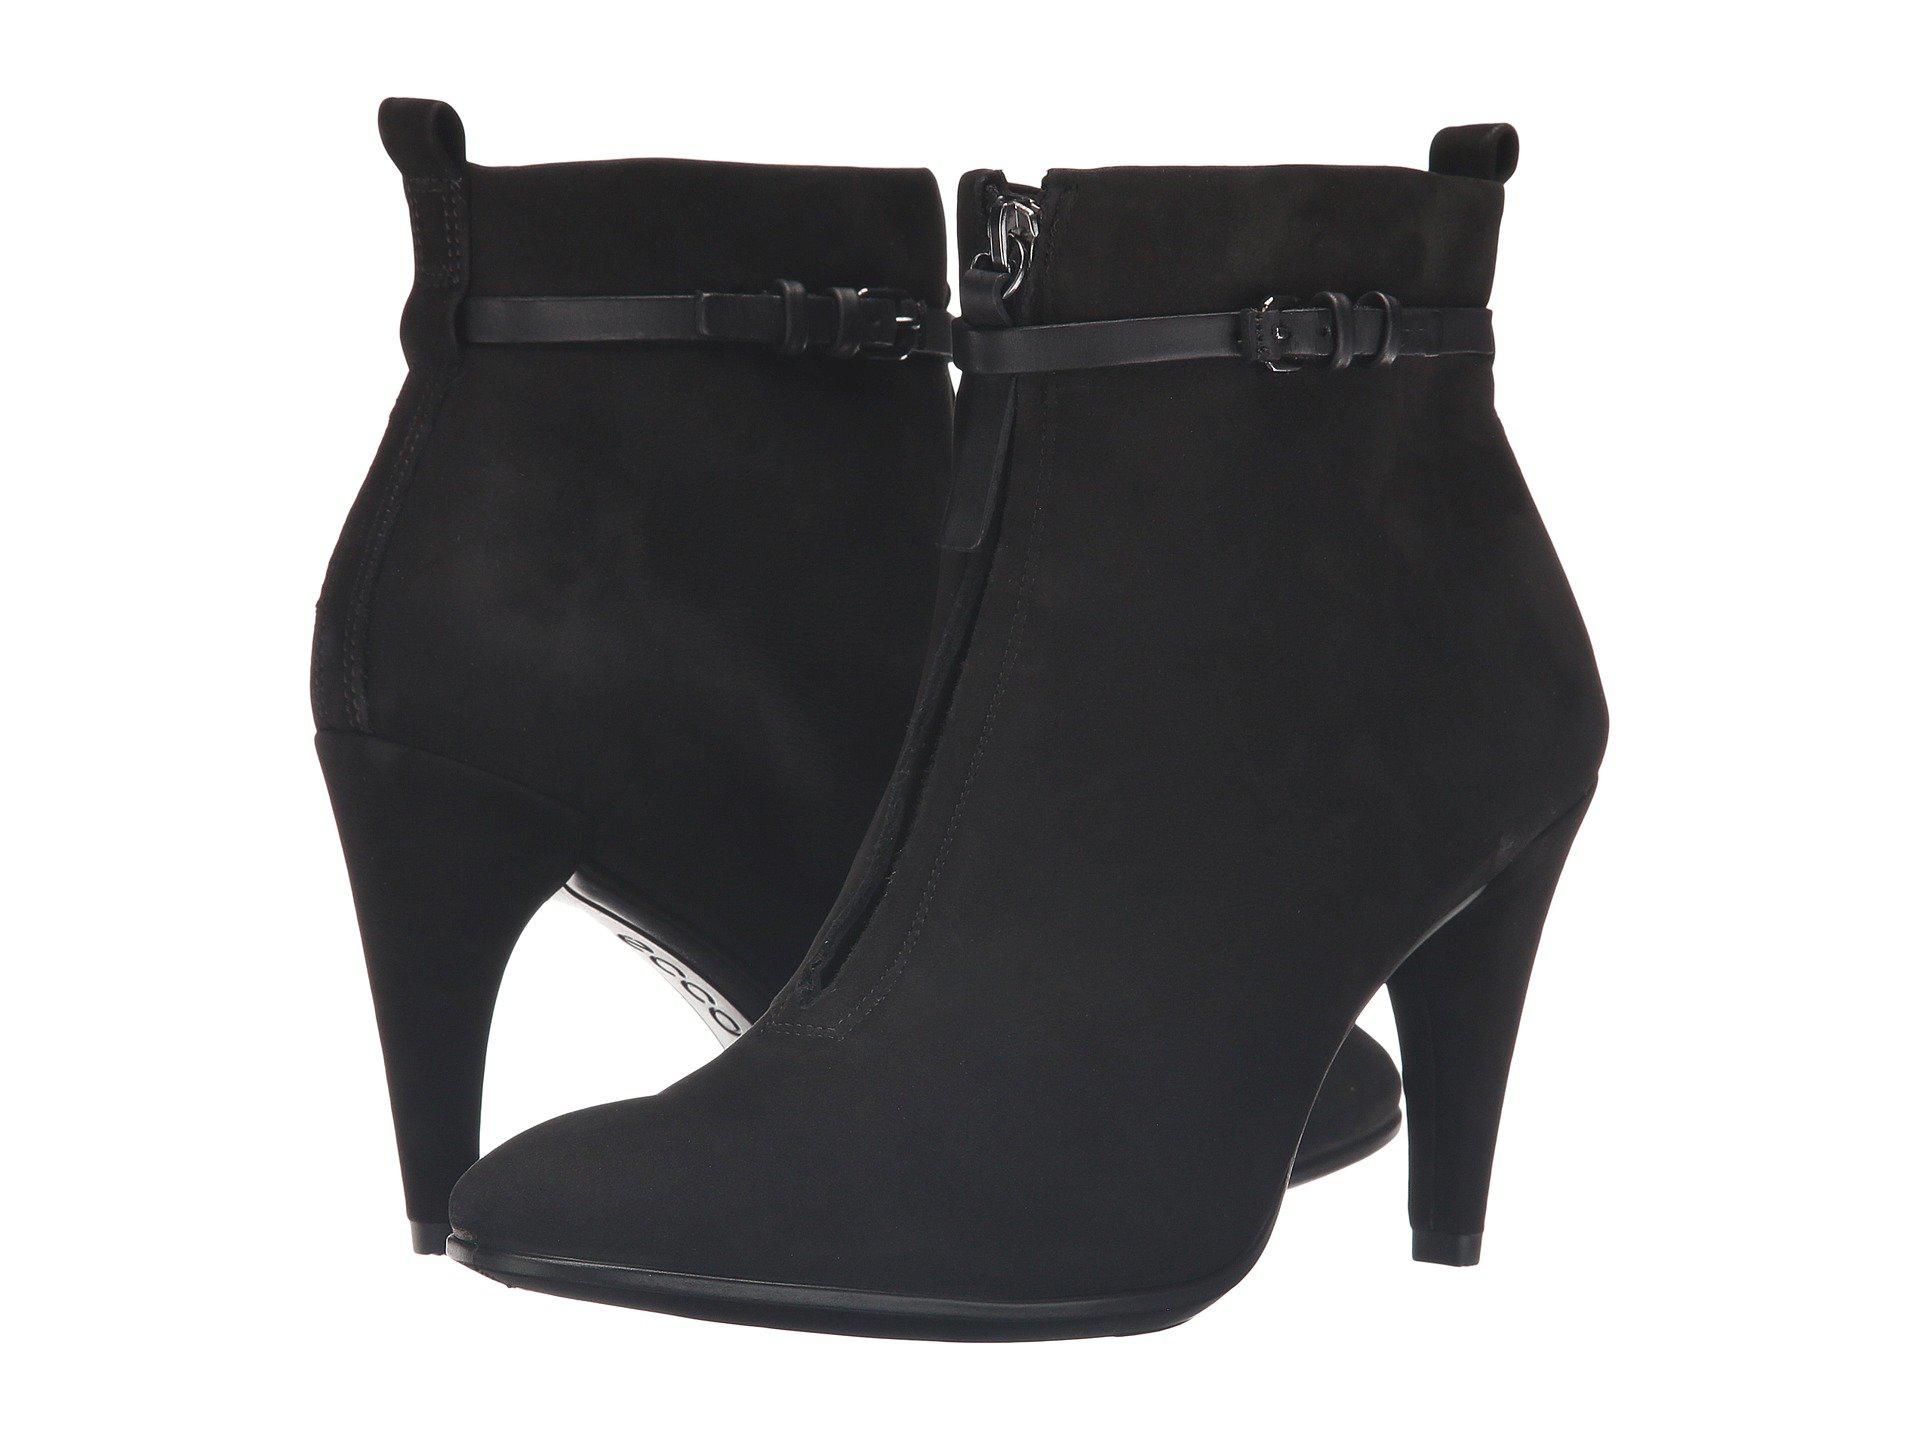 d2765570d5928 Lyst - Ecco Shape 75 Sleek Ankle Boot in Black - Save 56%